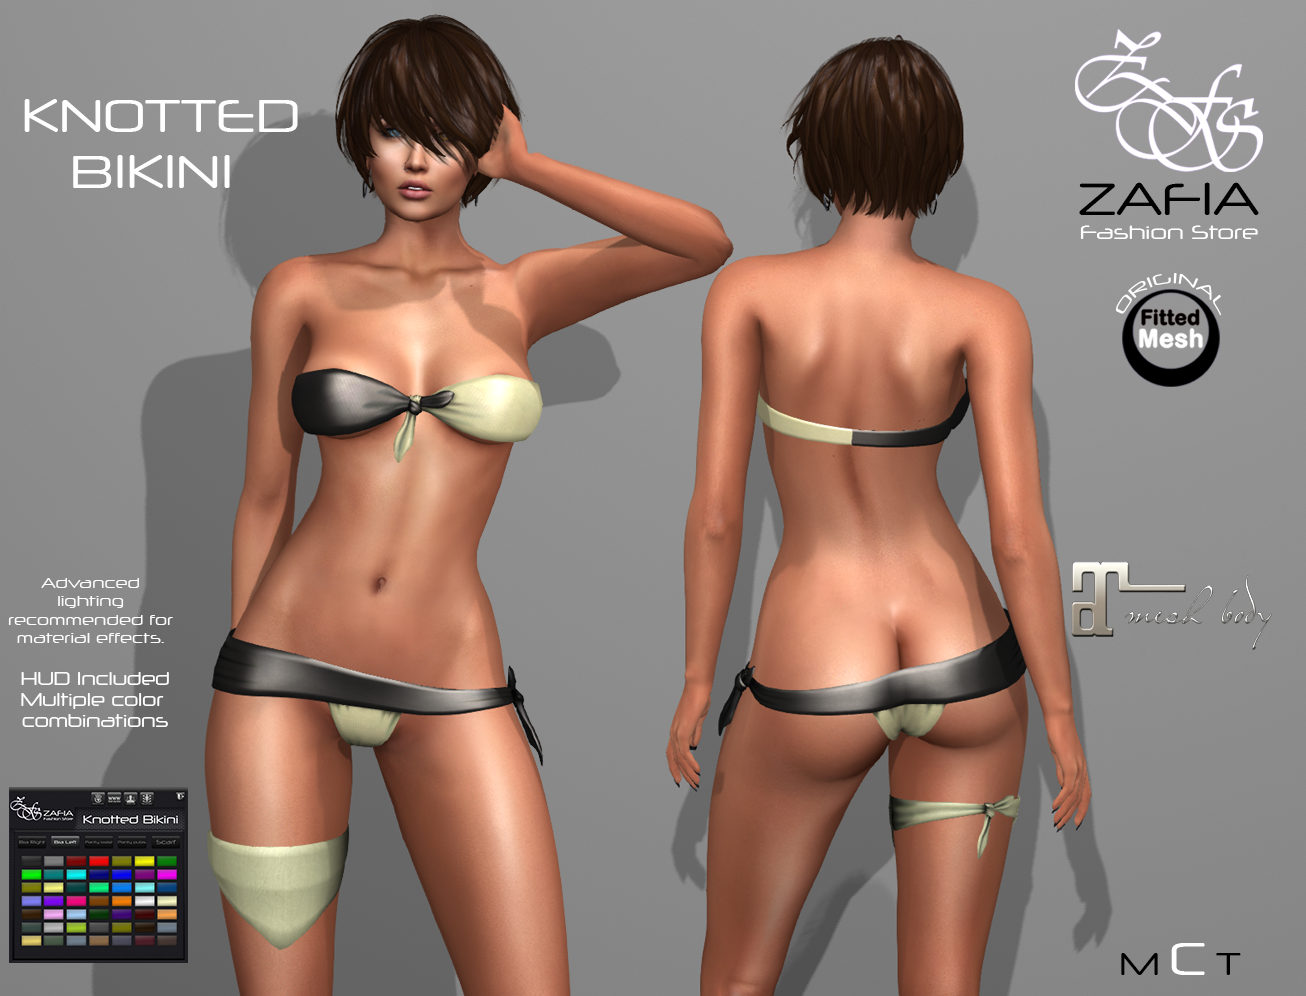 ZAFIA Knotted Bikini. Updates. – ZAFIA Fashion Store